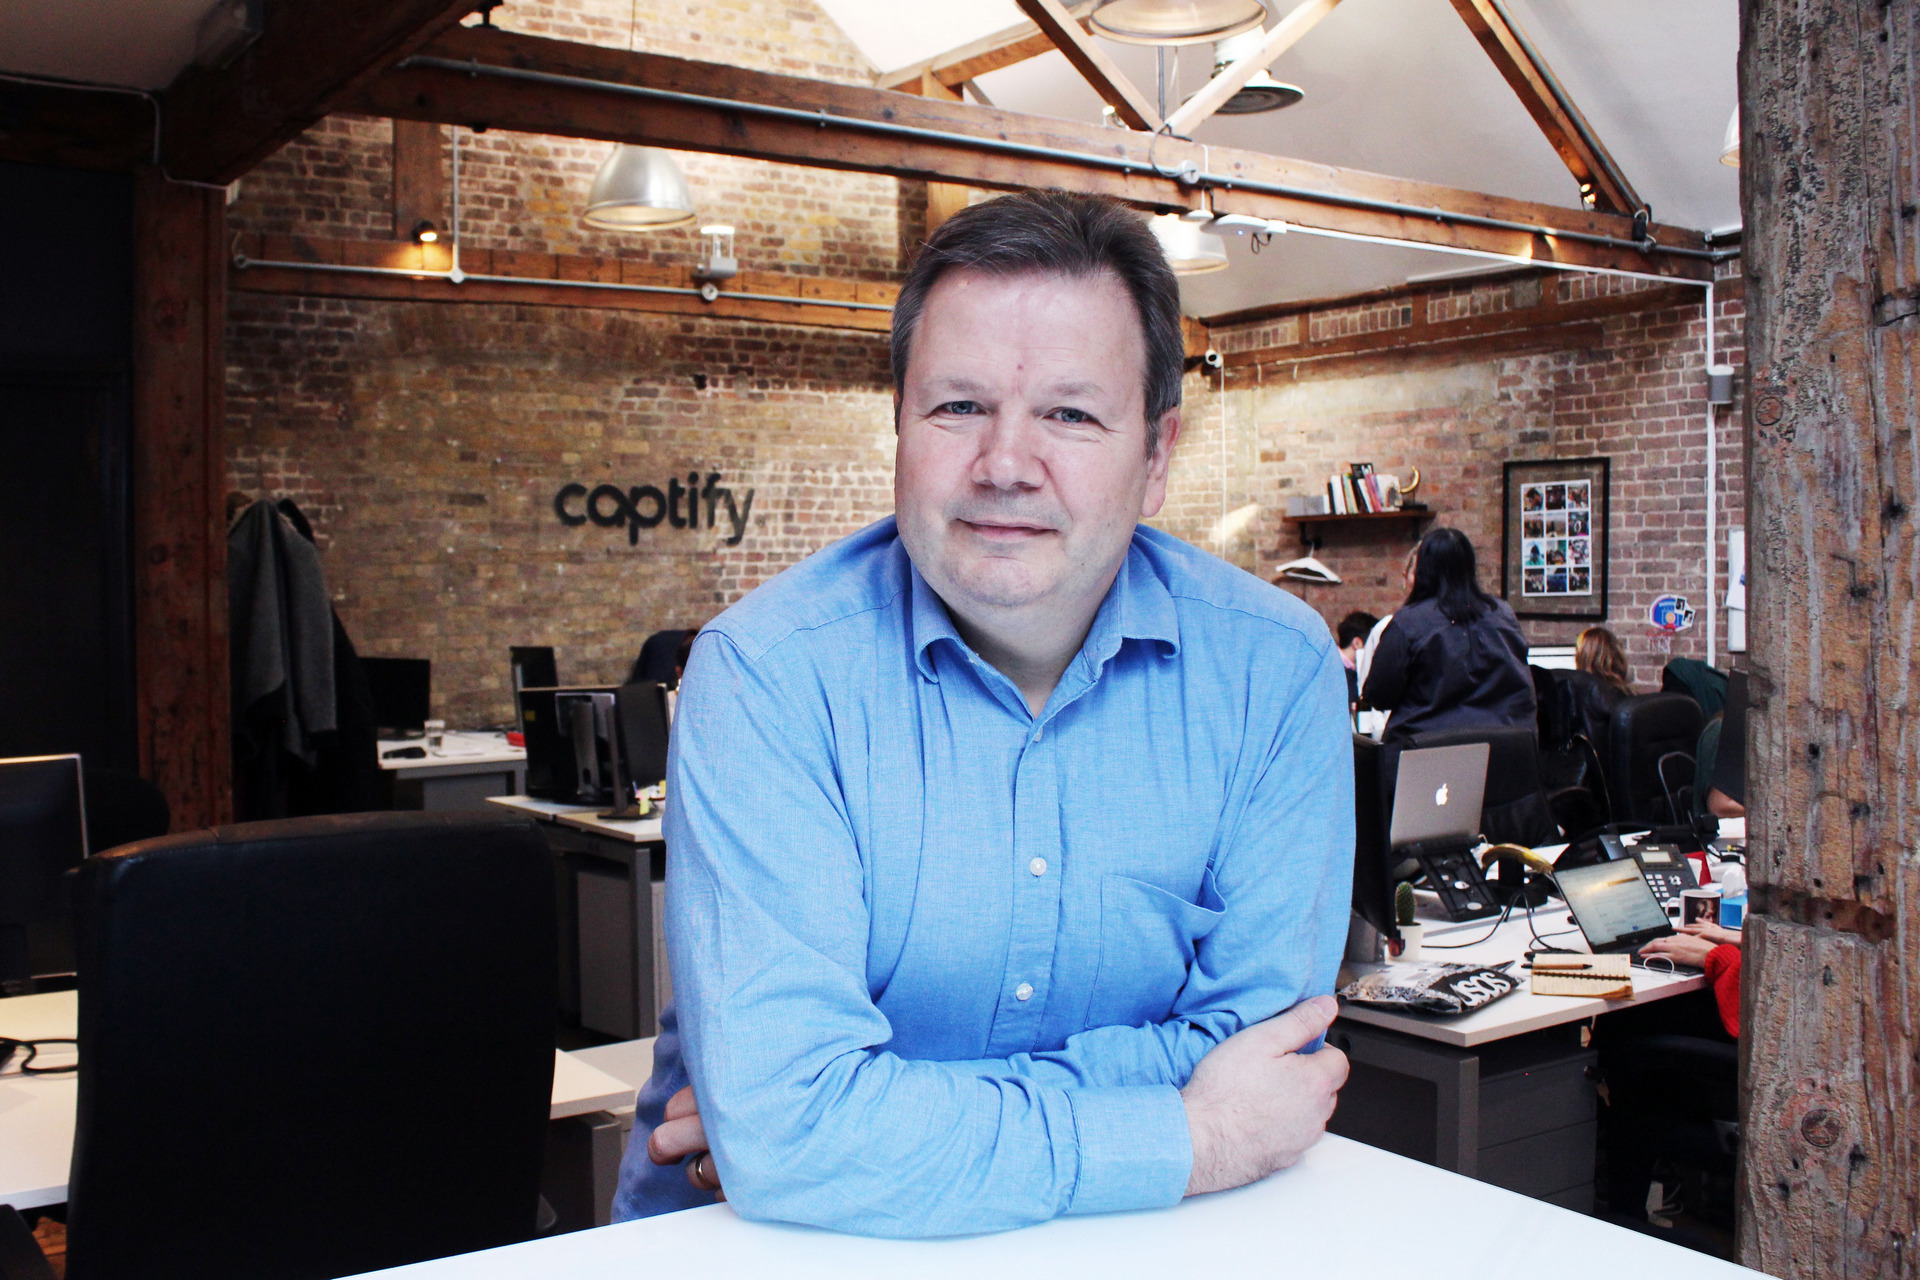 Getting To Know Captify's New Chief of People, Shaun Bradley